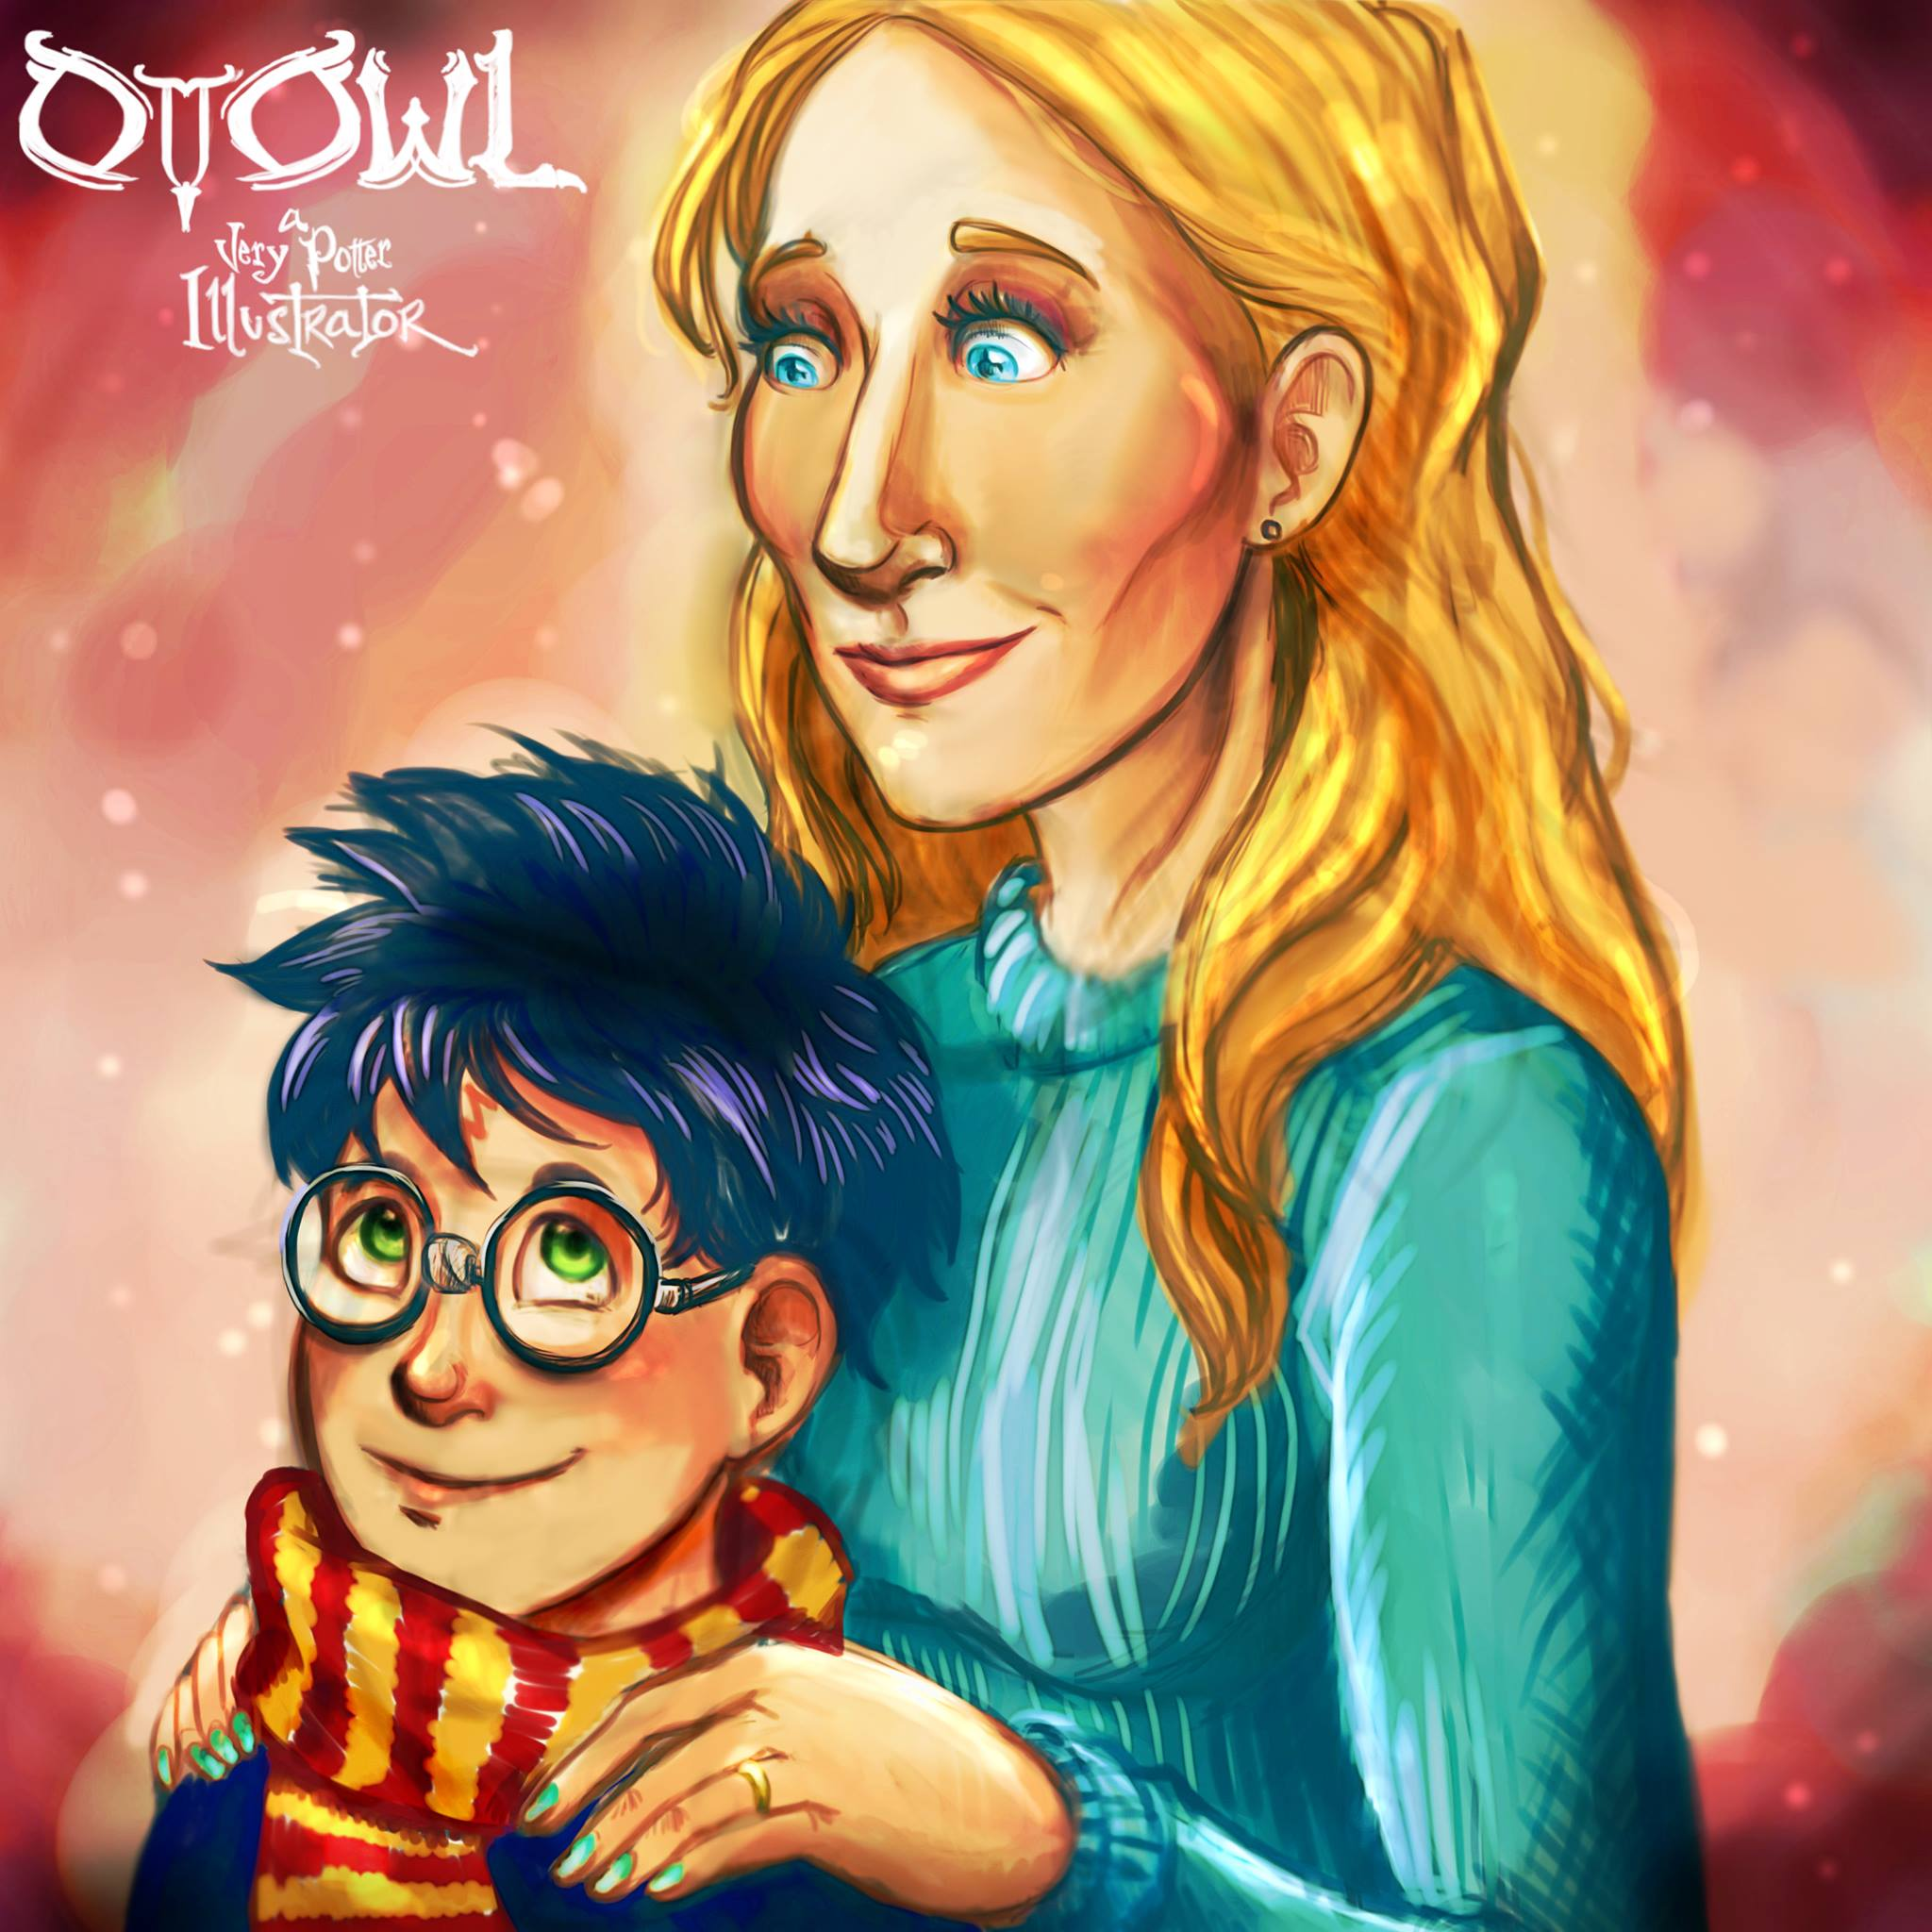 rowling-and-harry-ottowl